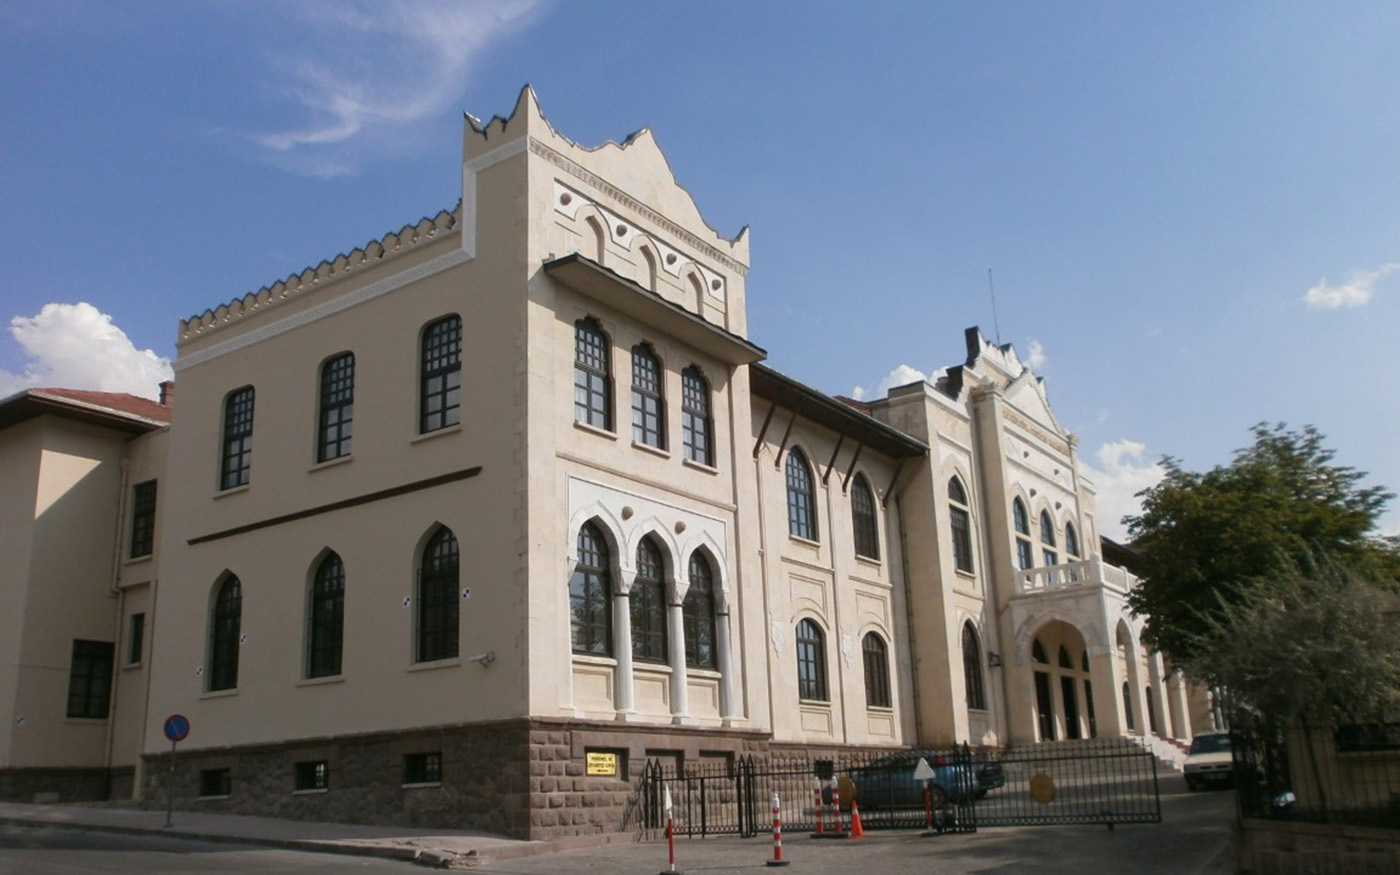 Ministry of Culture and Tourism Main Building